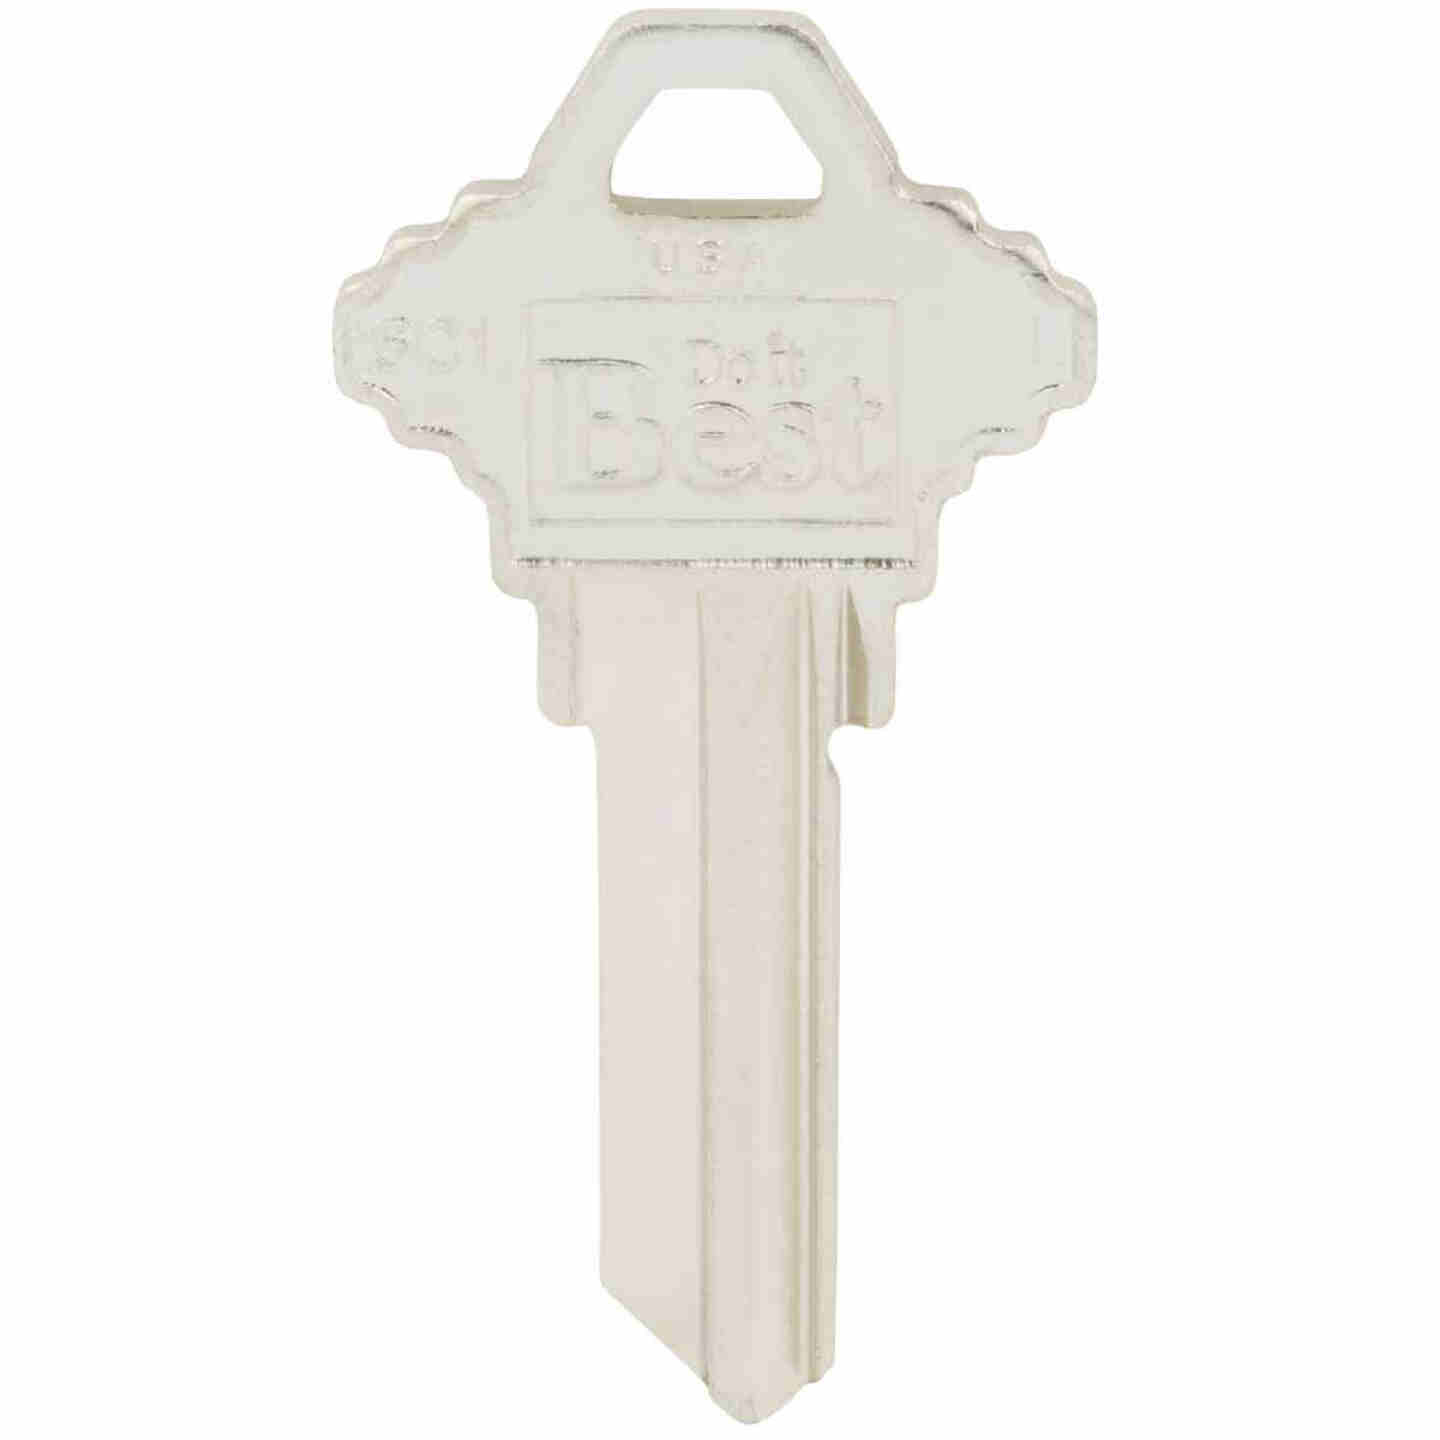 Do it Best Schlage Nickel Plated House Key, SC1 (10-Pack) Image 2